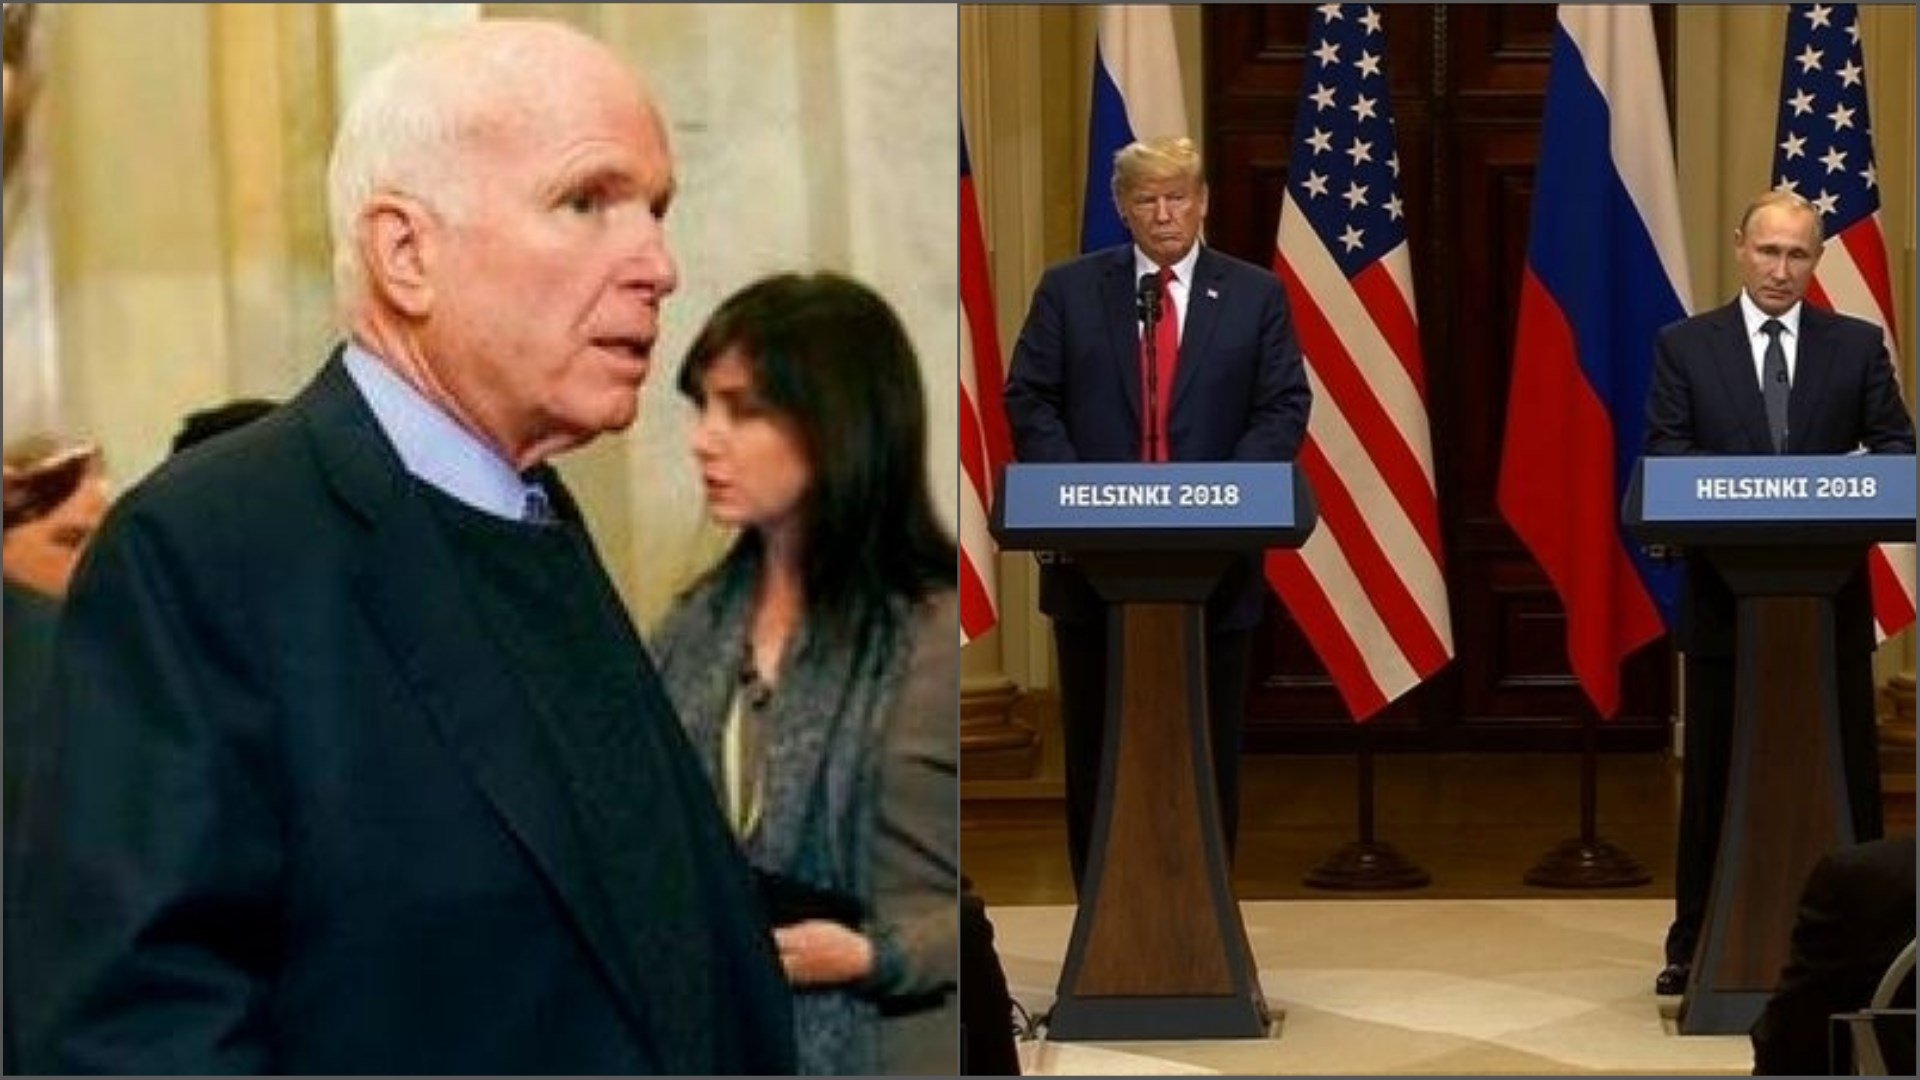 Arizona Sen. John McCain slammed President Donald Trump over a news conference he held with Russian President Vladimir Putin on July 16, 2018 in Helsinki, Finland. (Sources AP file photo and CNN Wire)